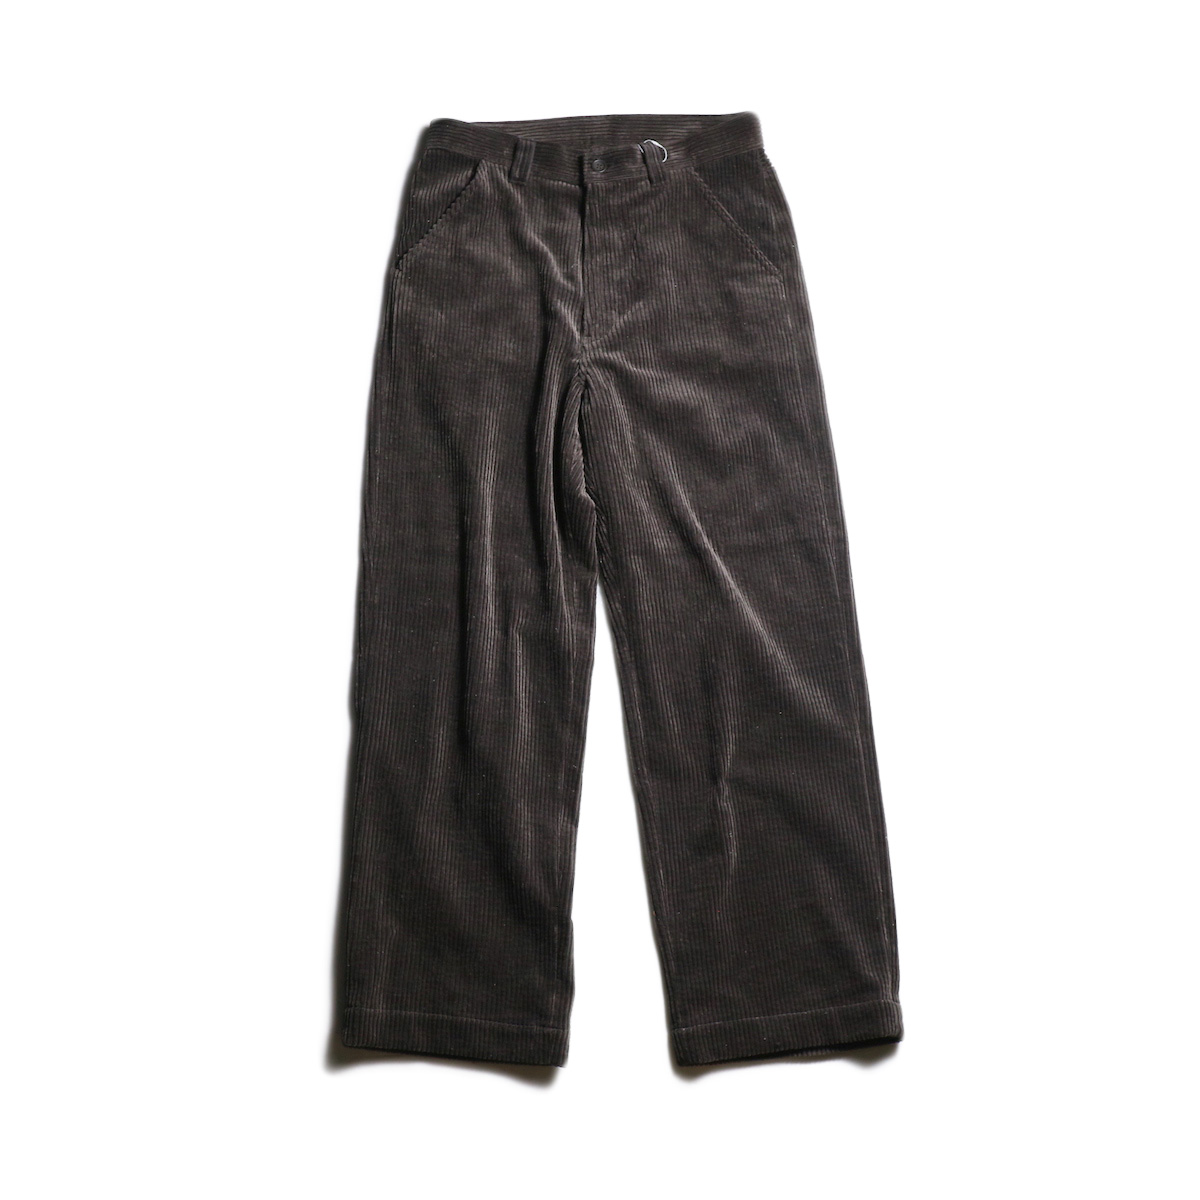 EVCON / CORDUROY WIDE PANTS (Brown)